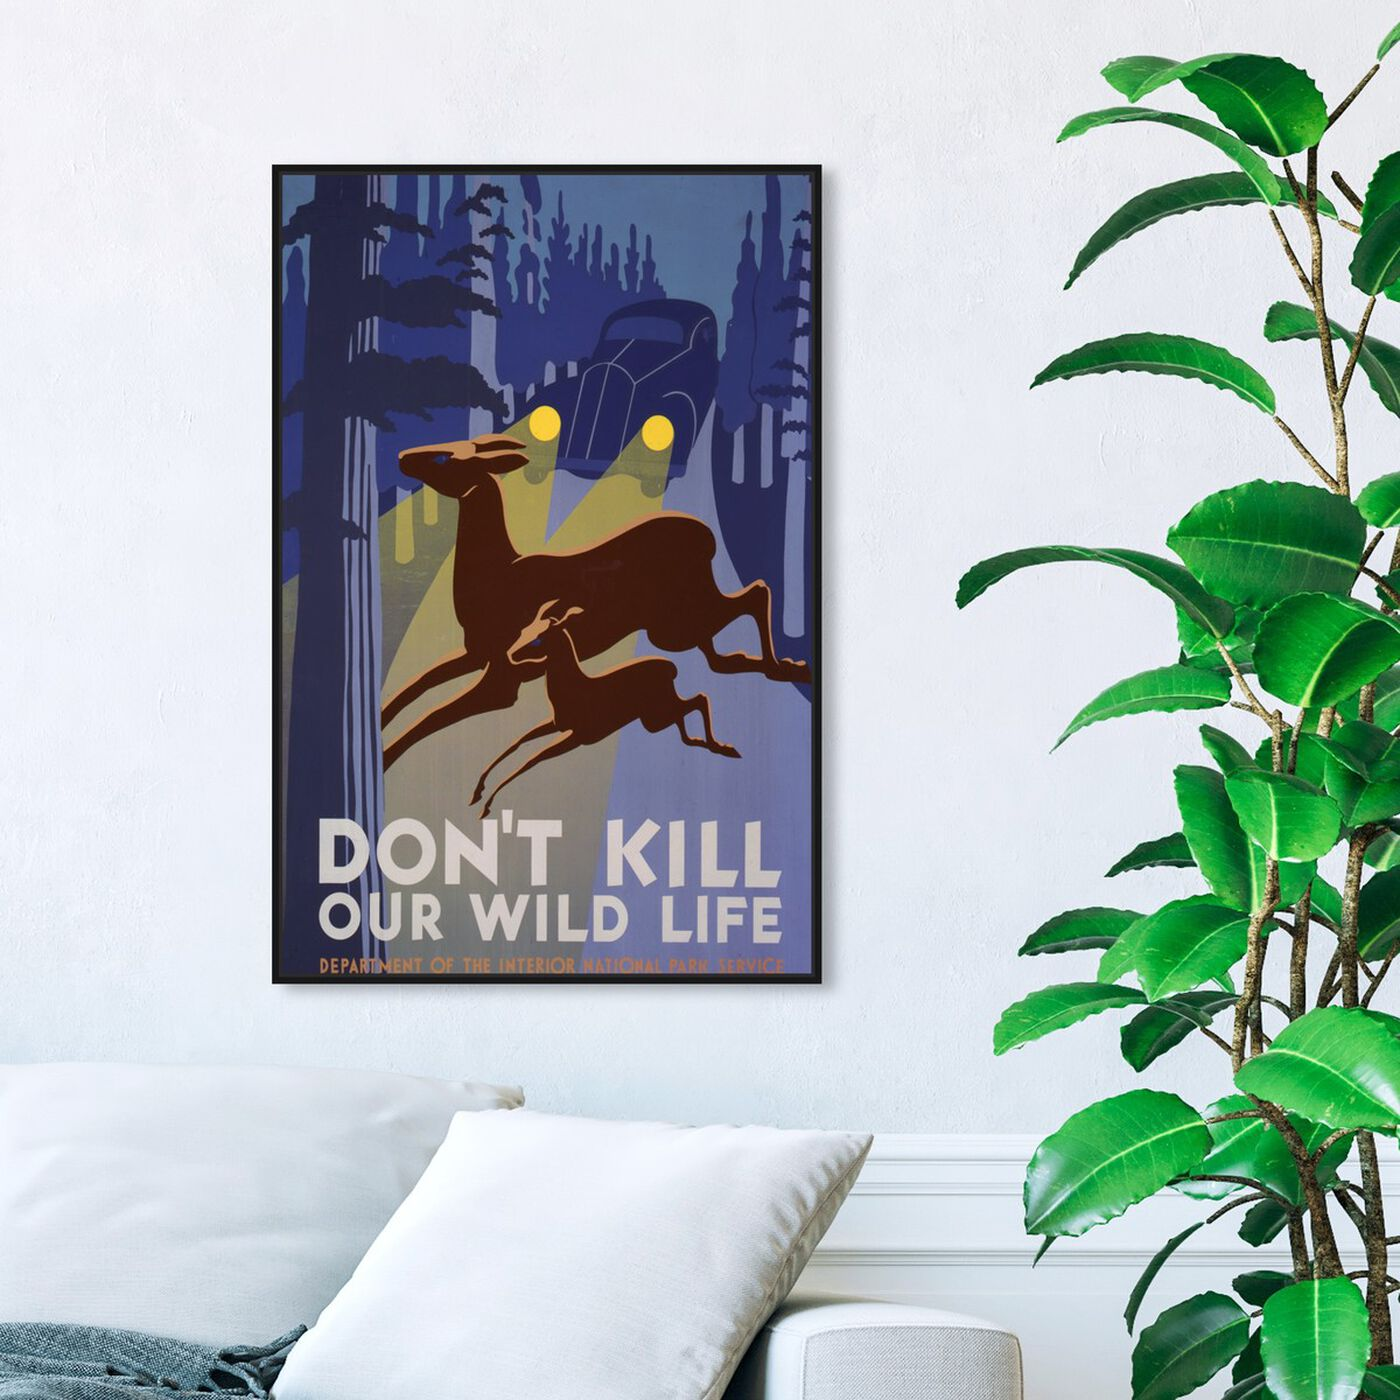 Hanging view of Don't Kill Our Wild Life featuring advertising and posters art.